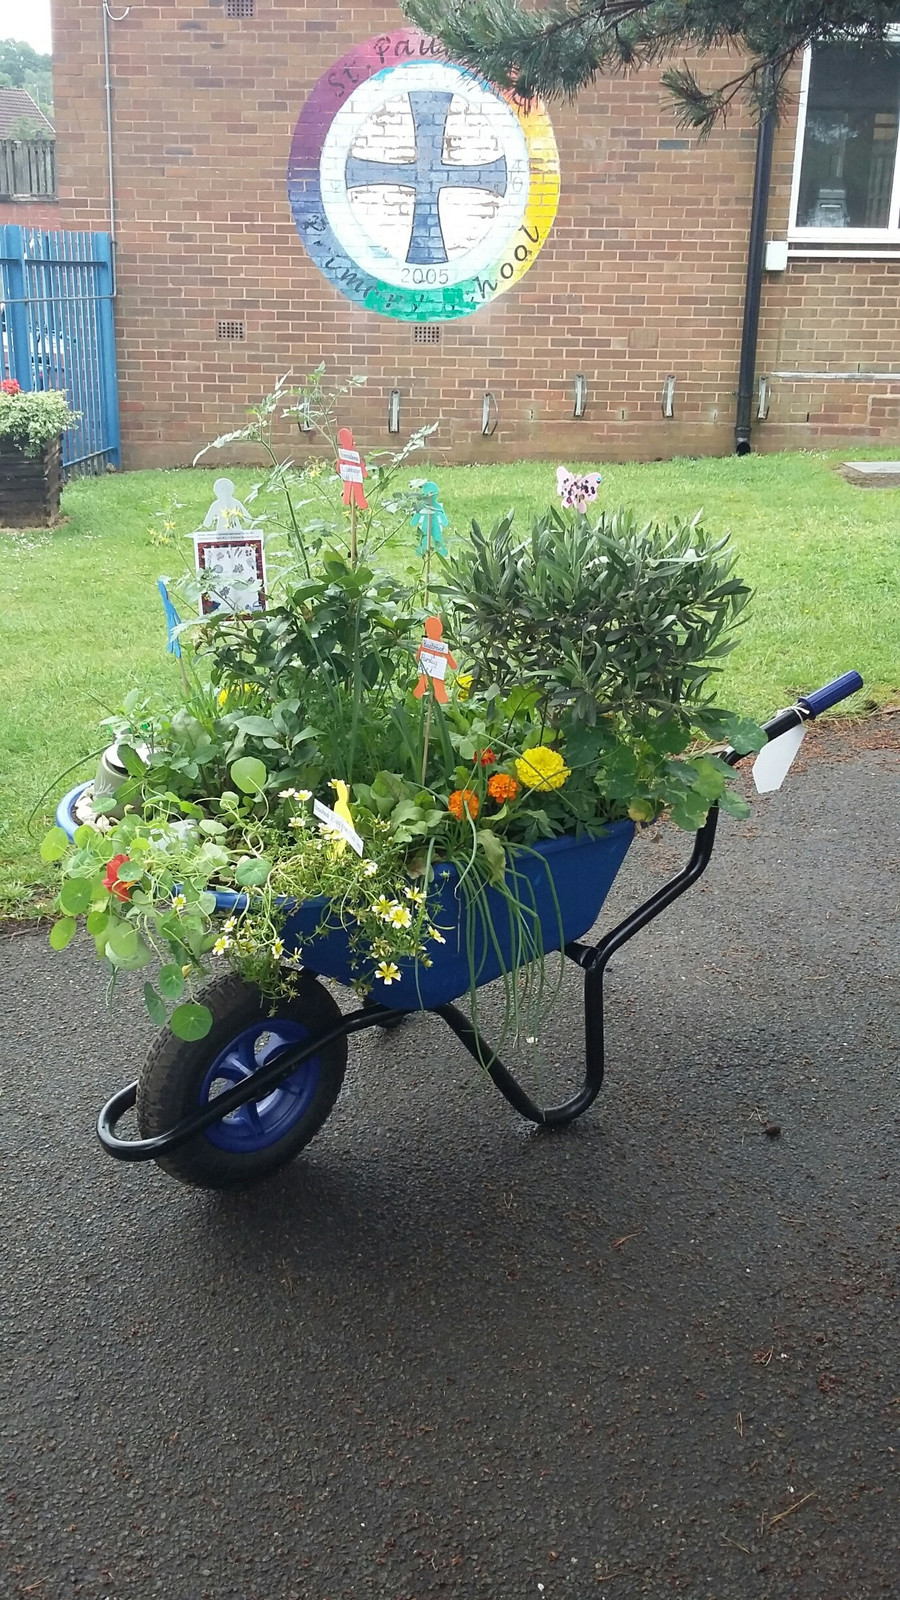 Unfortunately we did not win the wheelbarrow competition but, as you can see, Mrs Rooney and the children from the gardening club should be very proud of what they achieved! The children had a great time joining in all of the extra fun activities on the day. Well done to everyone.